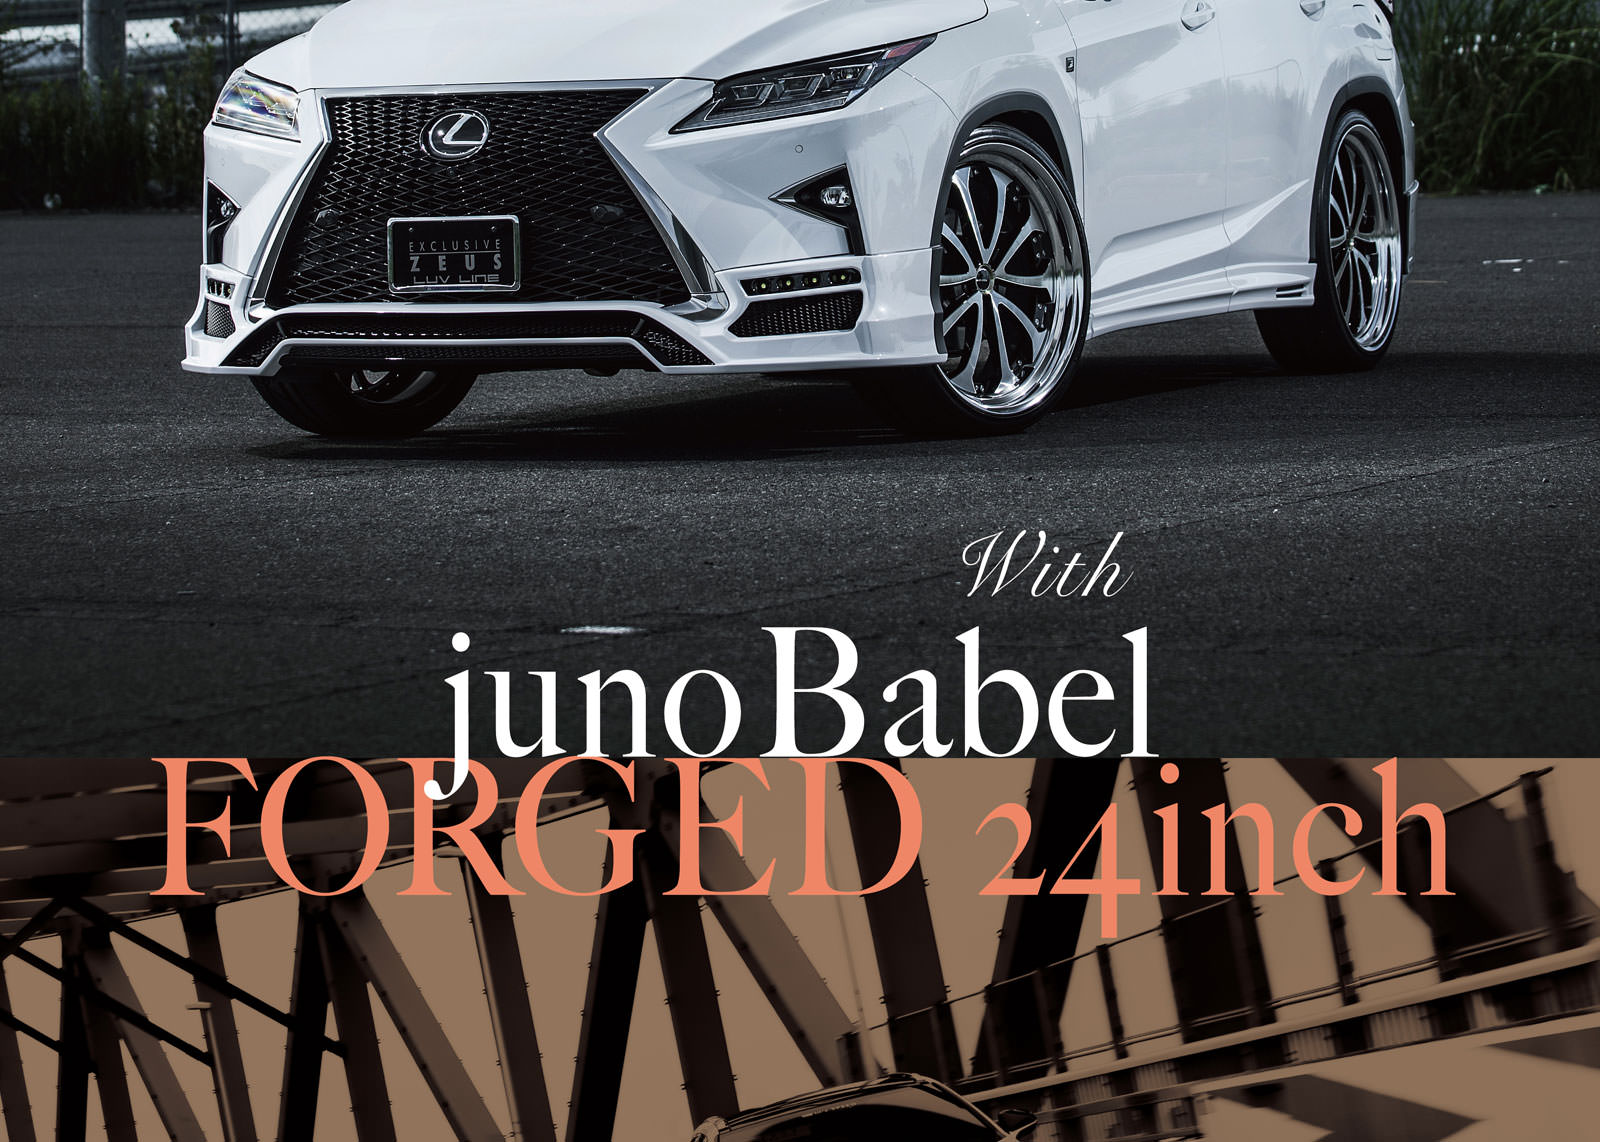 With juno Babel FORGED 24inch